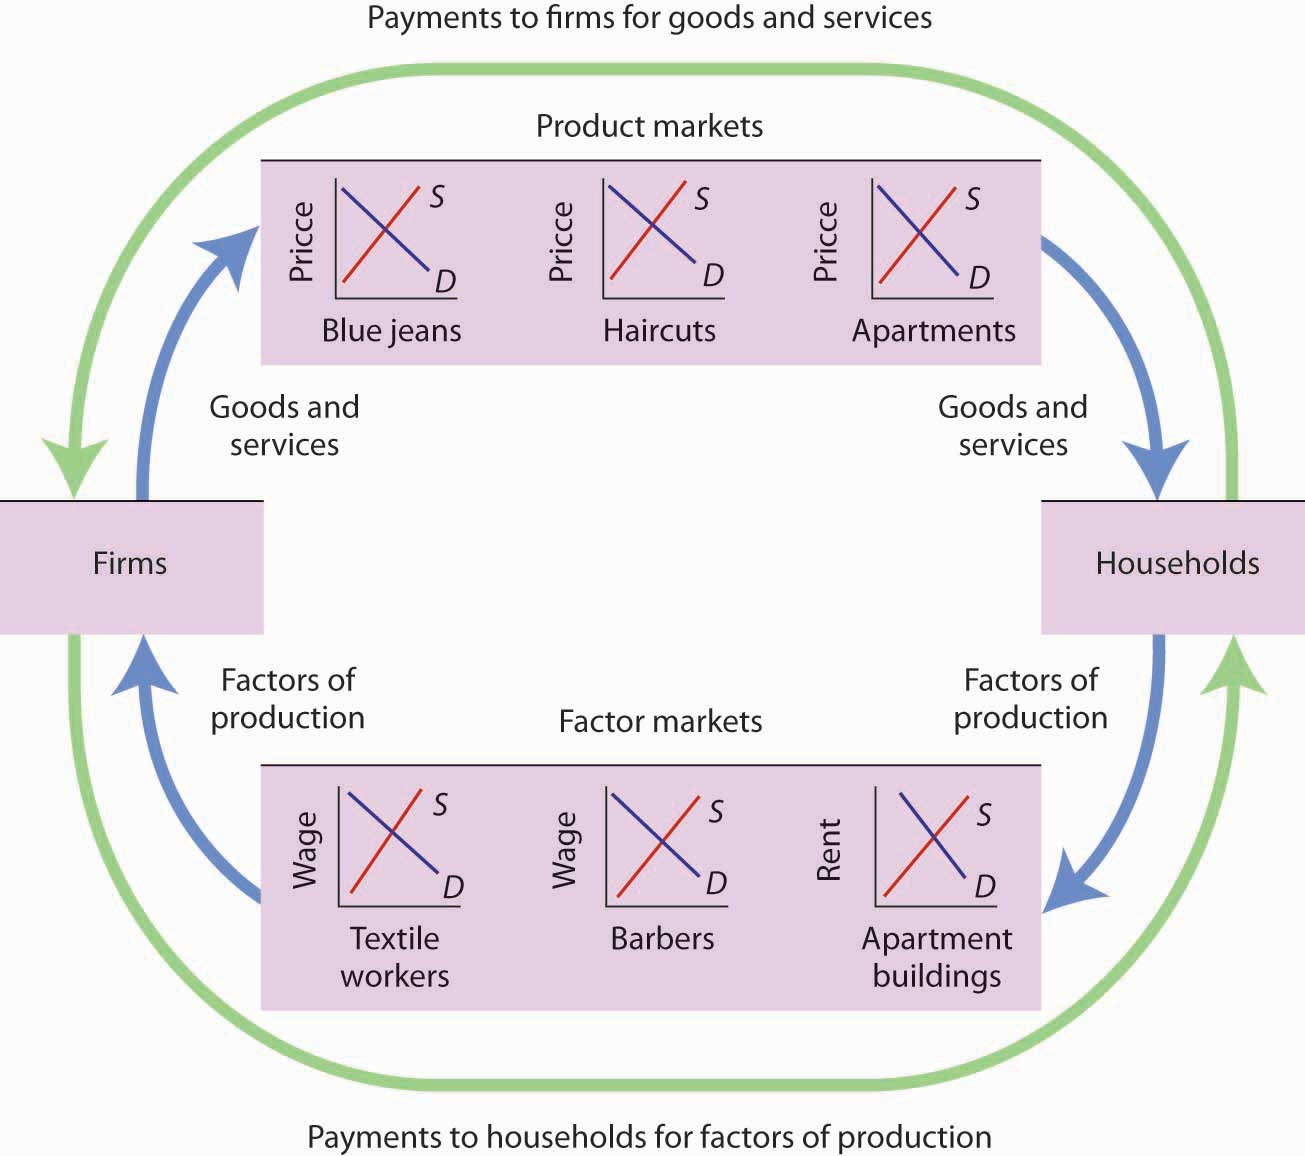 Principles of microeconomics v10 flatworld this simplified circular flow model shows flows of spending between households and firms through product and factor markets the inner arrows show goods and nvjuhfo Images